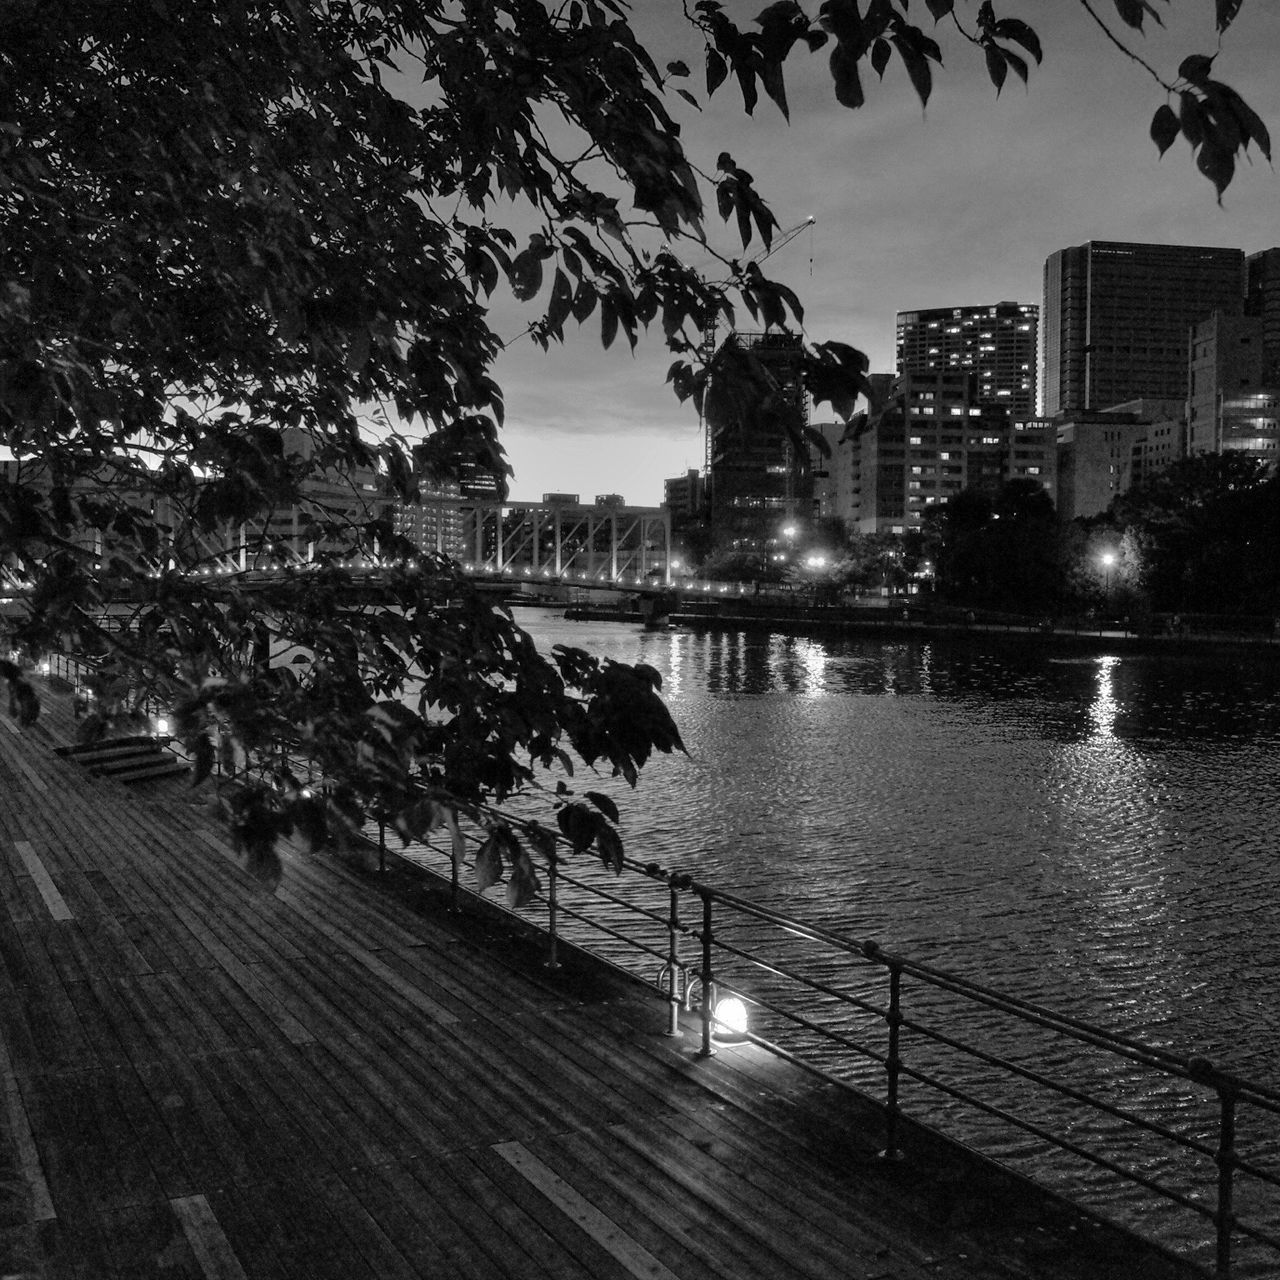 River Riverside River View Landscape B&w Street Photography Streetphotography_bw City Life Night Snapshot Nopeople No People Twilight Night Lights Reflection Reflections City Lights Light And Shadow at Shinagawa 品川 , Tokyo Japan